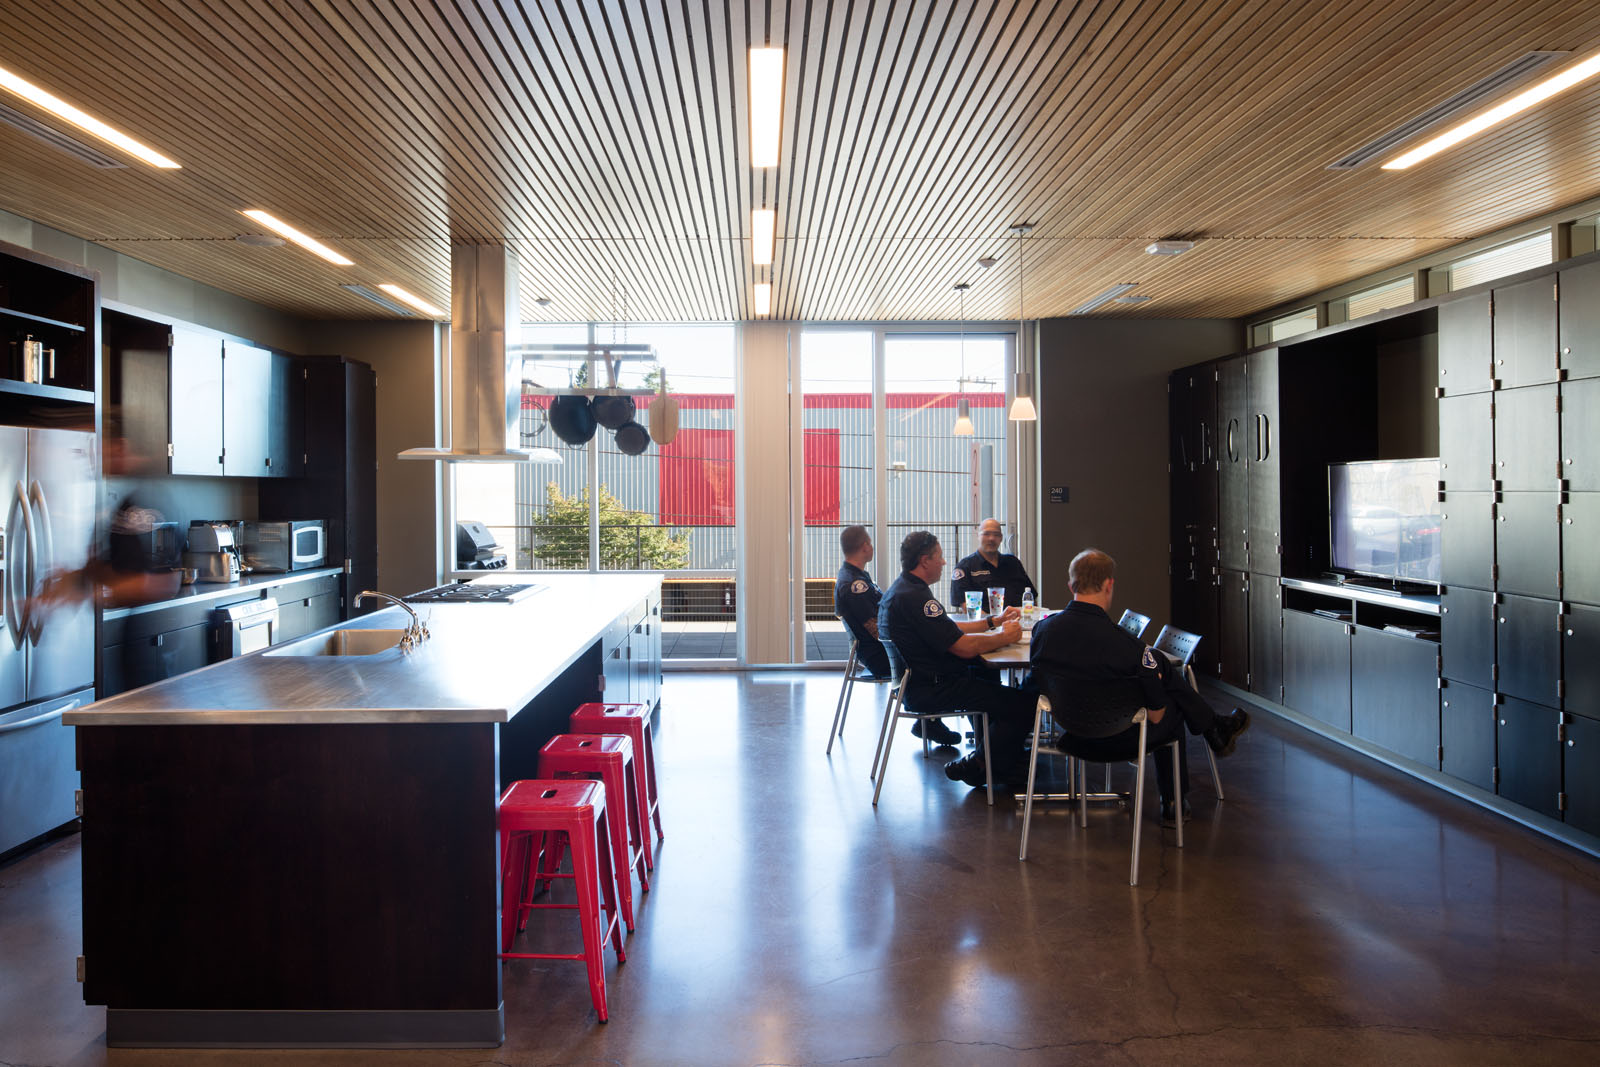 The kitchen and dining space. Photo by Lara Swimmer, courtesy of Schacht Aslani Architects.